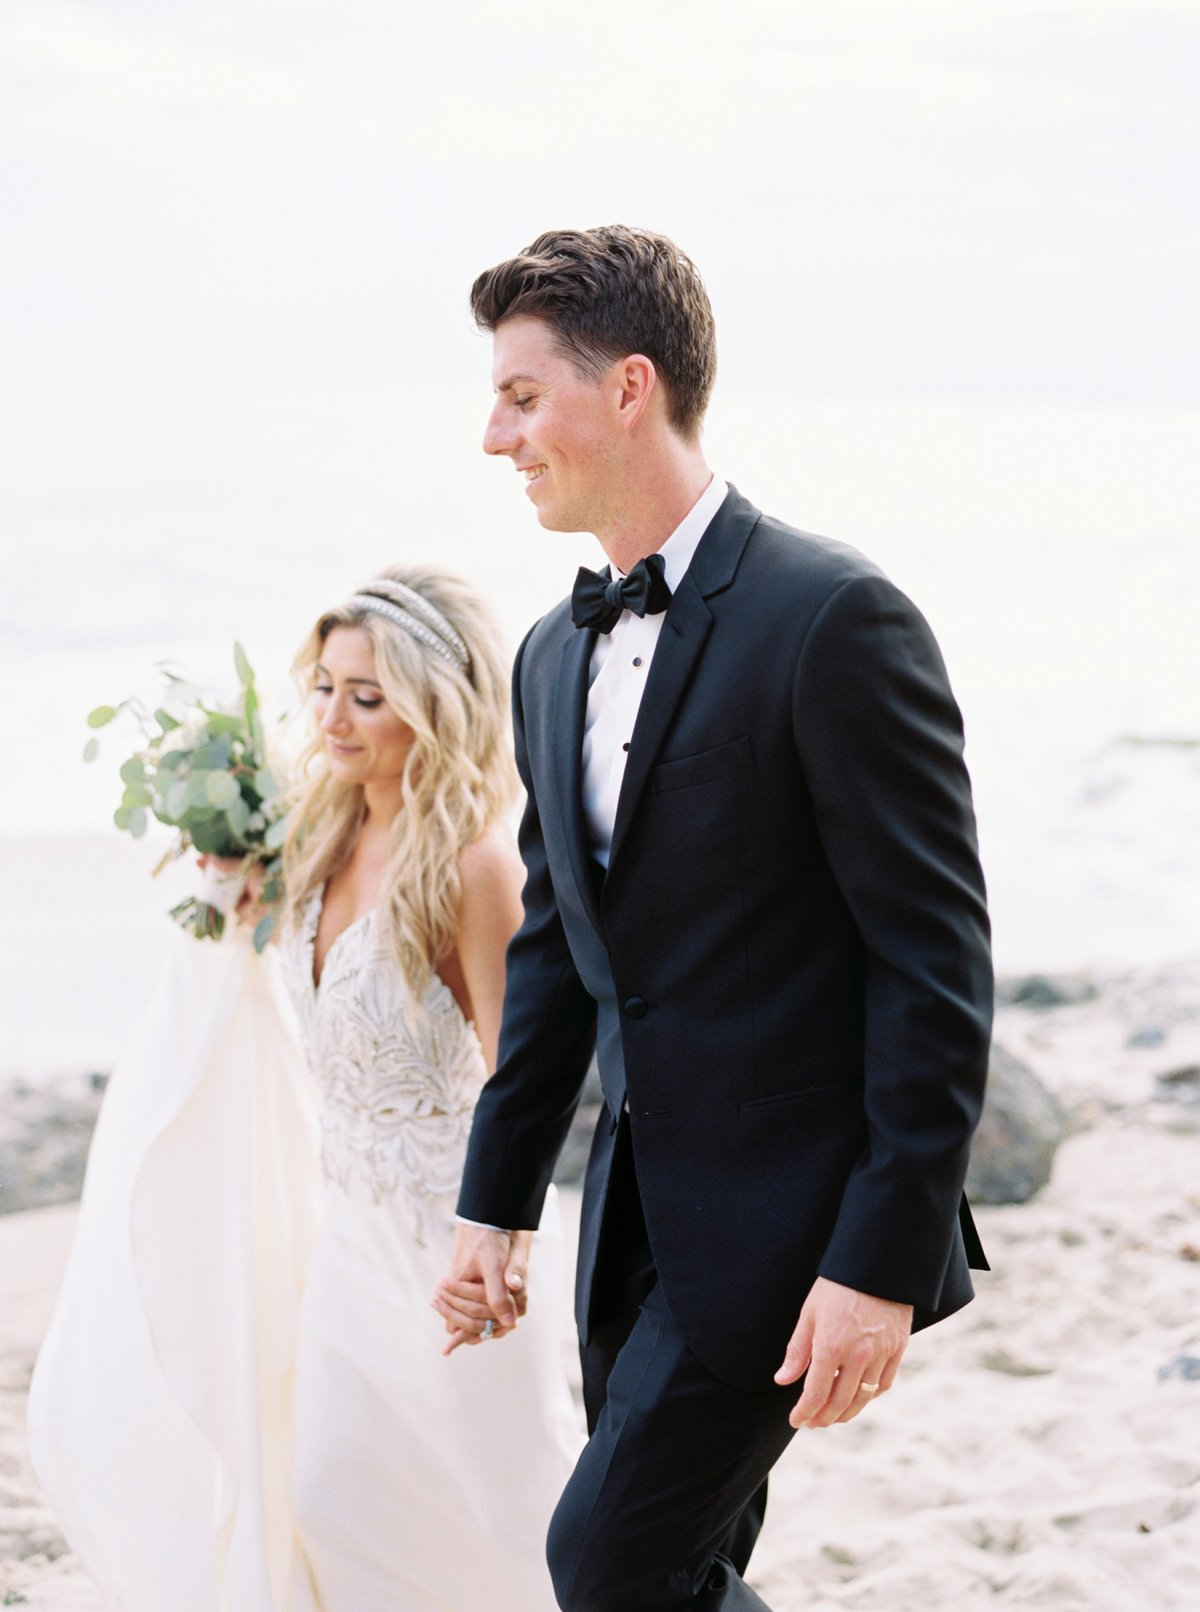 nicoleclareyphotography_evan+jeff_laguna beach_wedding_0018